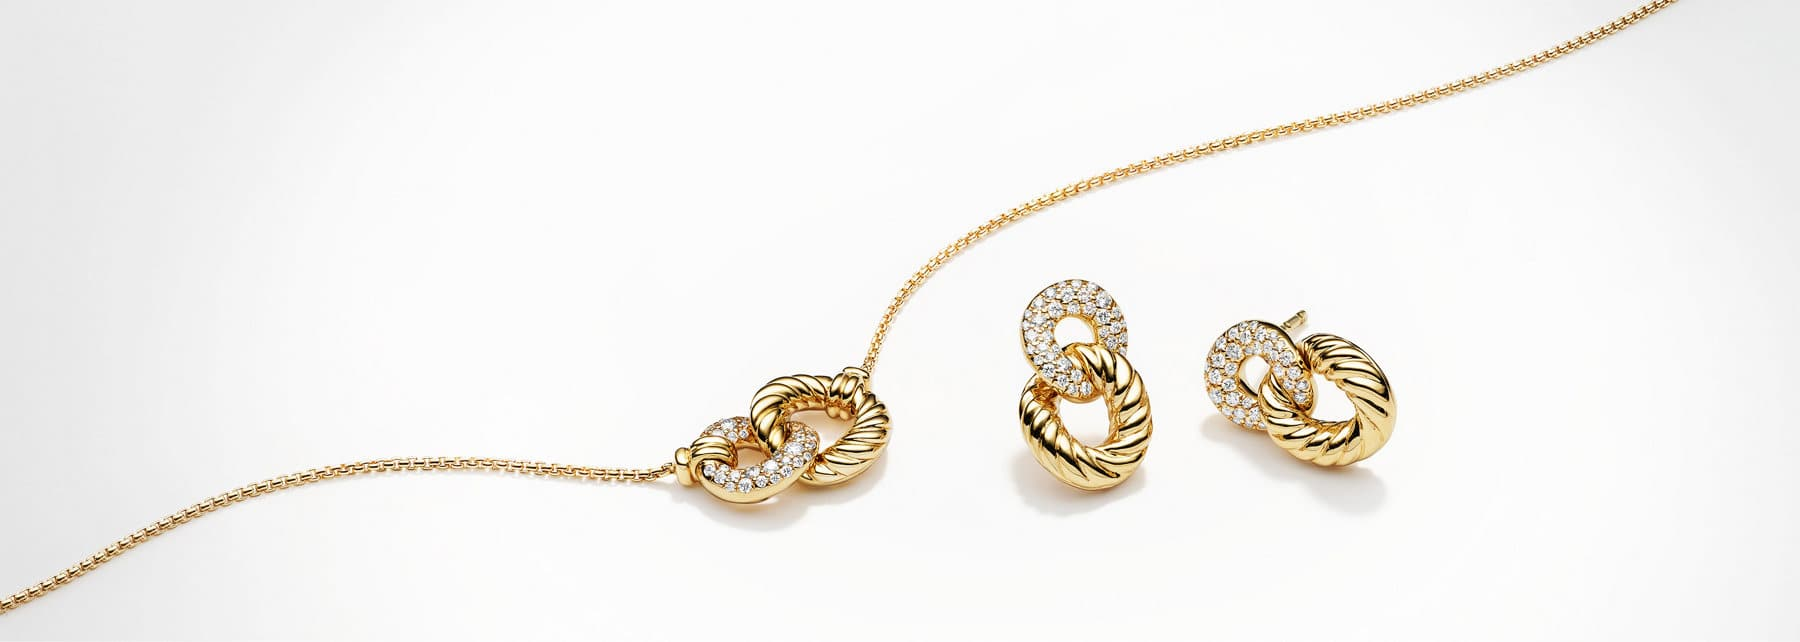 A color photo shows three Belmont curb-chain bracelets in a row in sterling silver and 18k yellow gold, 18K yellow gold or sterling silver atop an off-white background with prominent shadows.